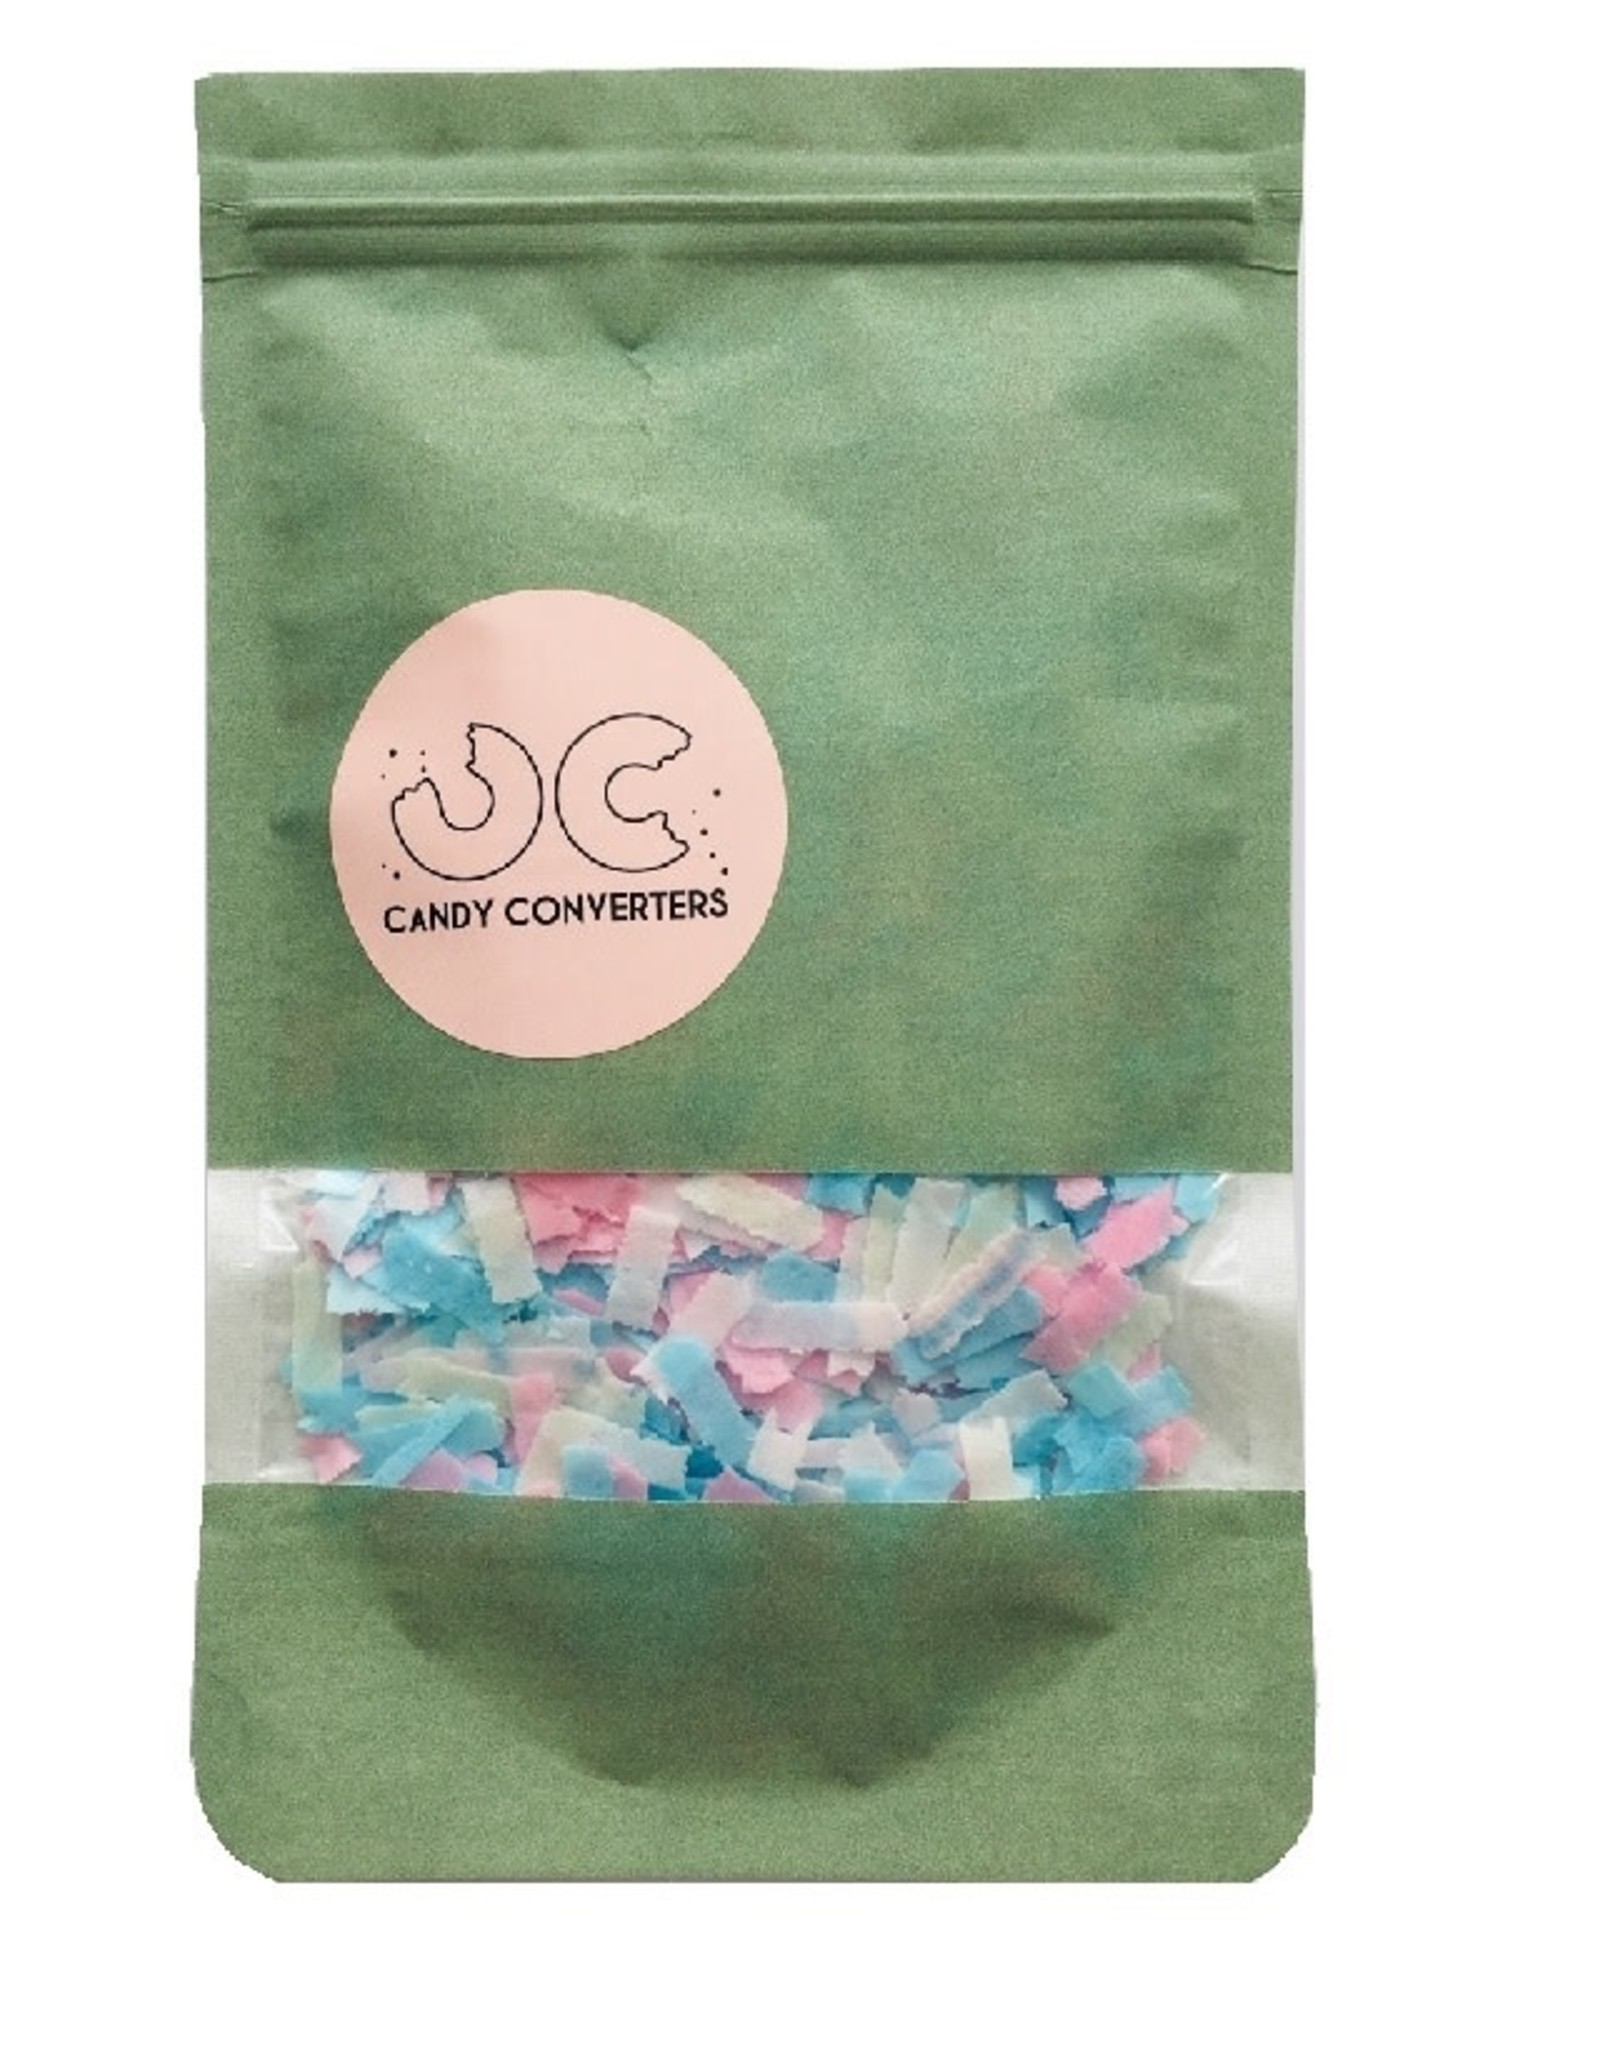 Candy Converters Conscious Confetti - Candy Converters 10g